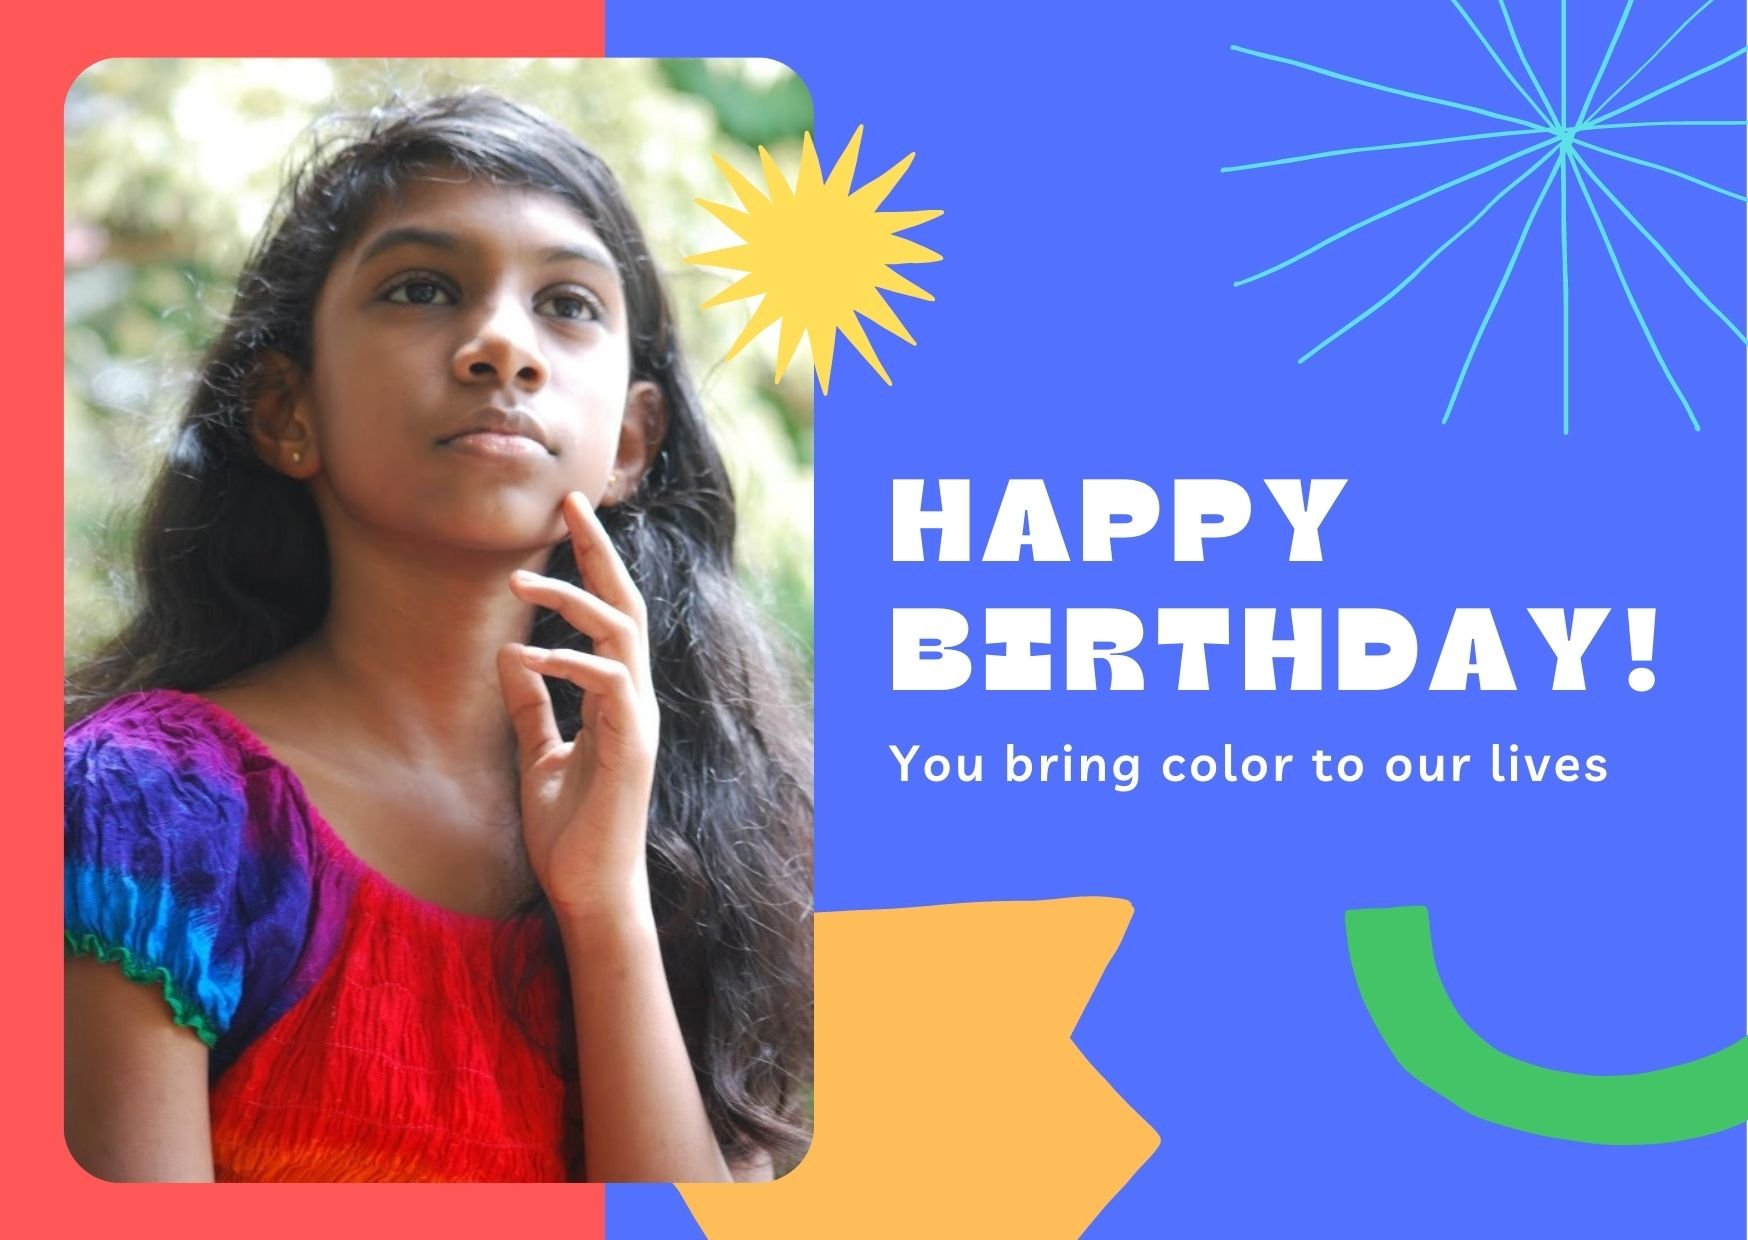 Happy Birthday - you bring color to our lives